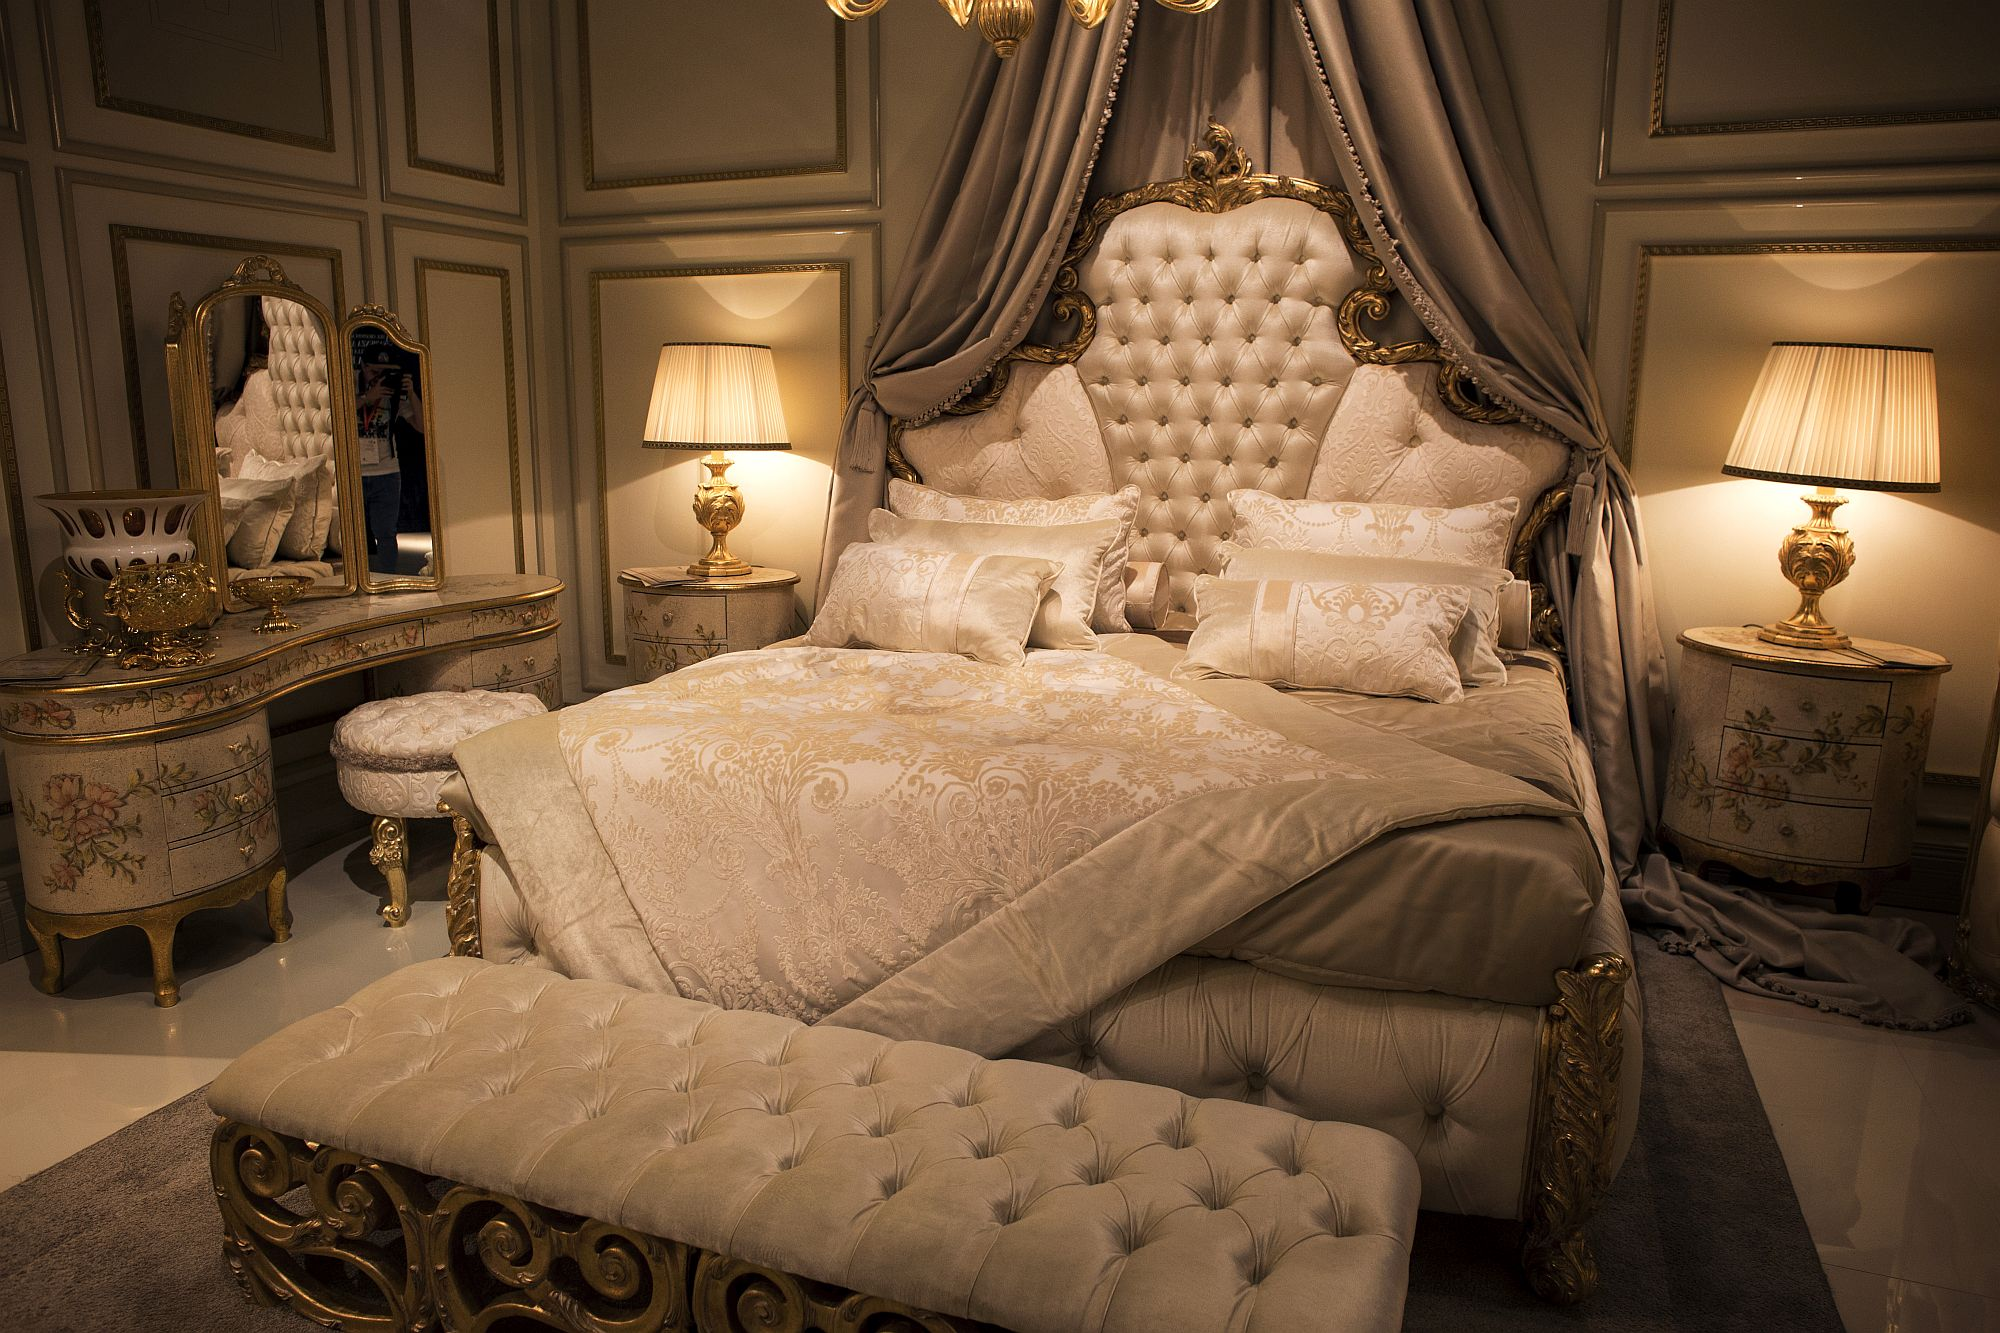 Opulent bedroom in gold and white from Andrea Fanfani